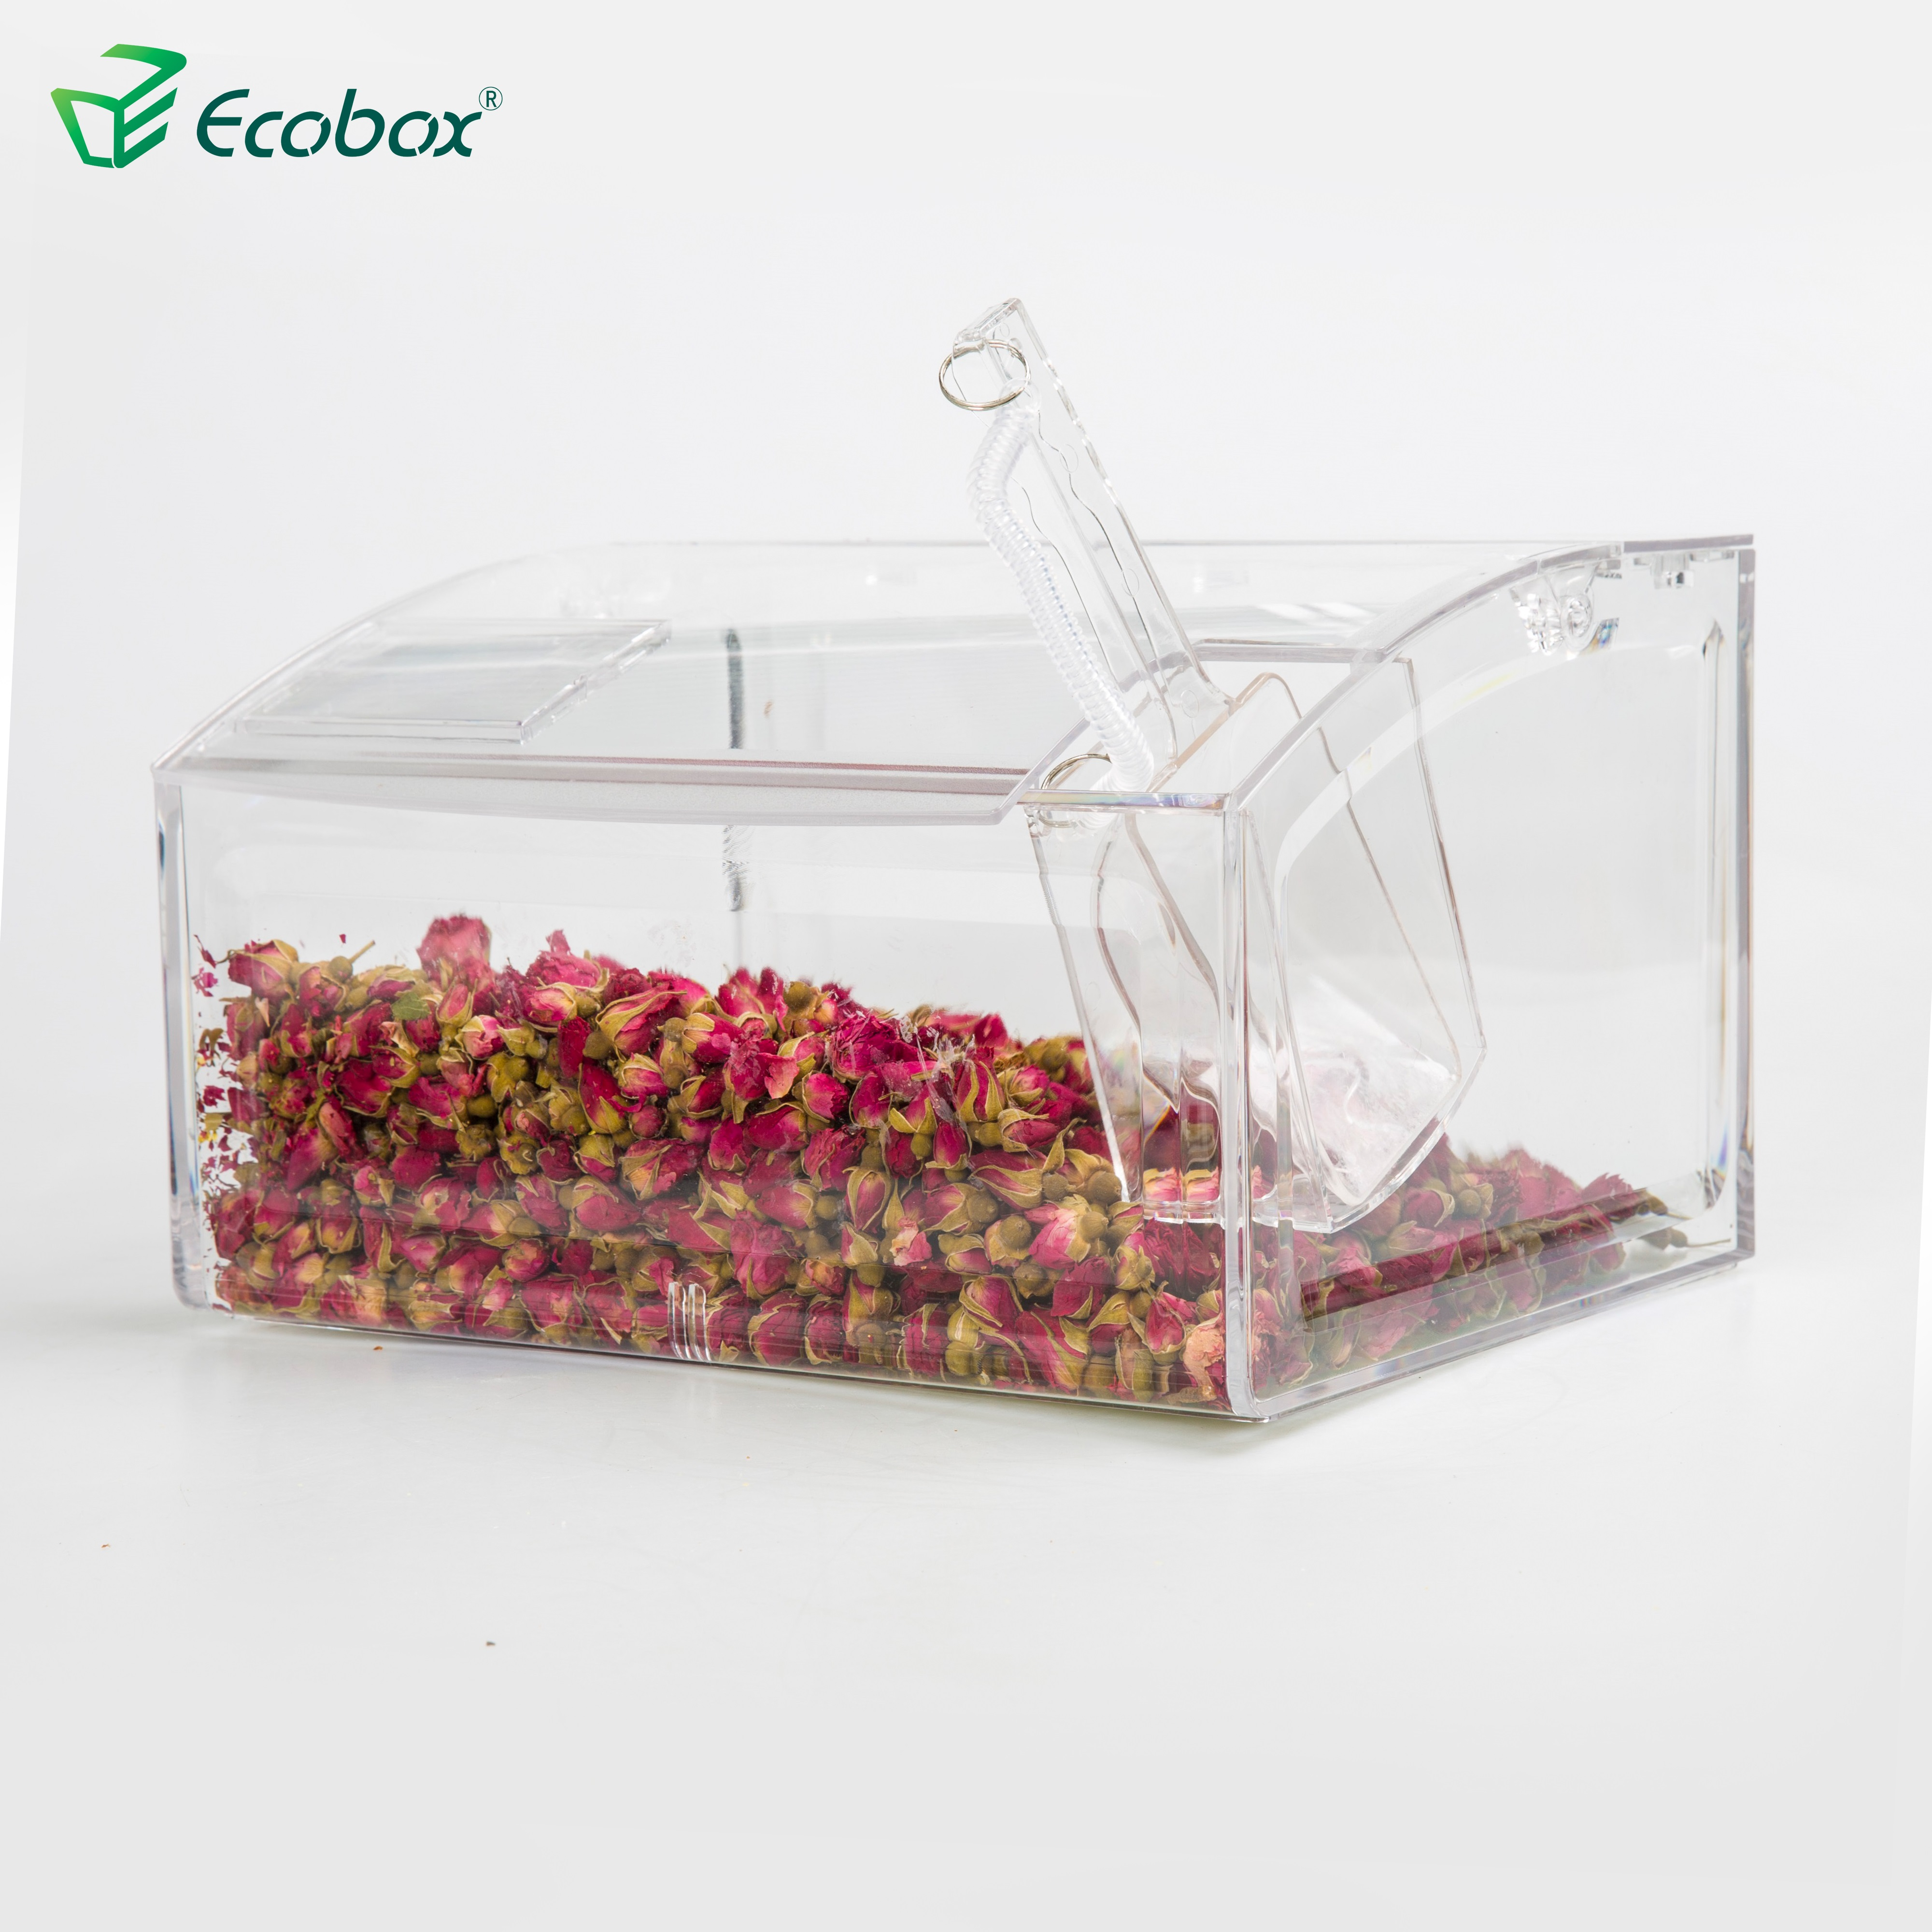 Ecobox Ecofriendly SPH-007 Supermarché bin scoop en vrac pour le magasin